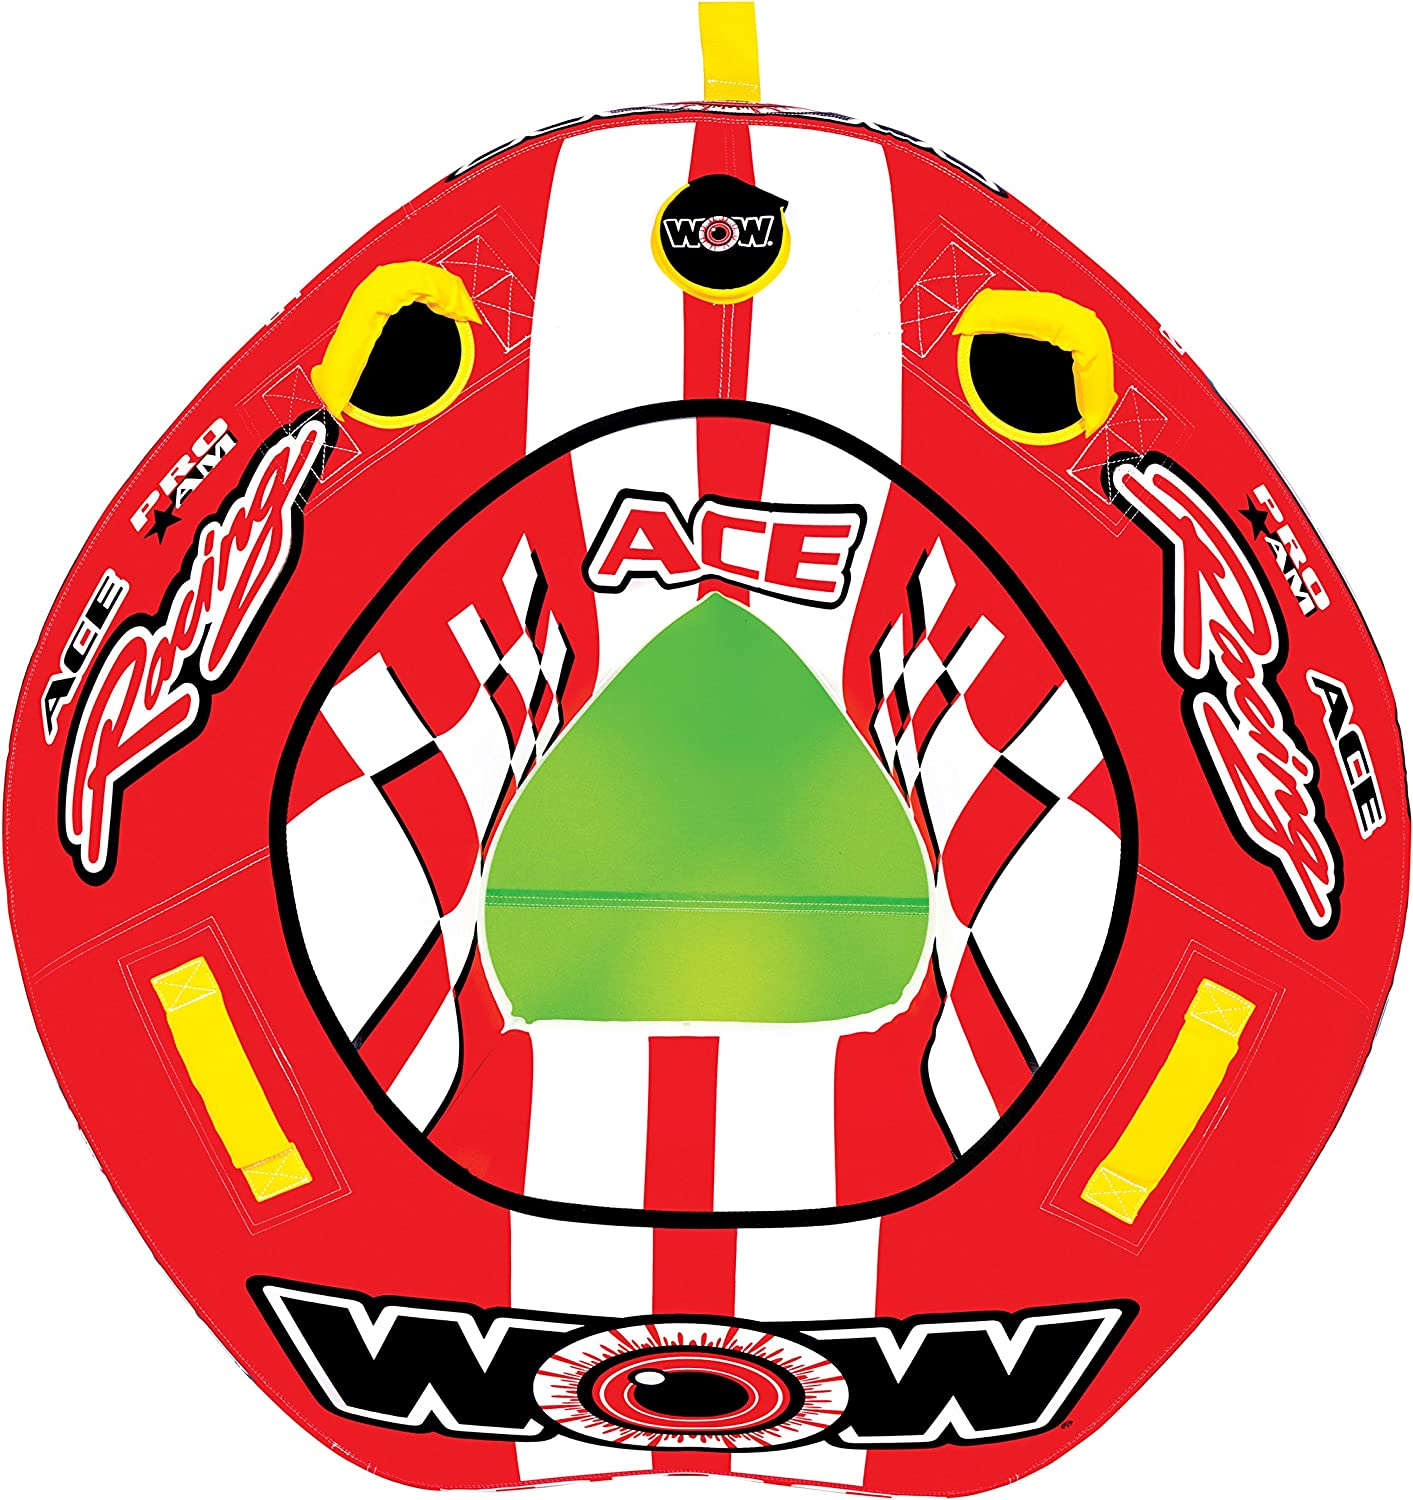 WOW World of Watersports, 15-1120, Ace Racing Towable, Ski Tube, 1 Person